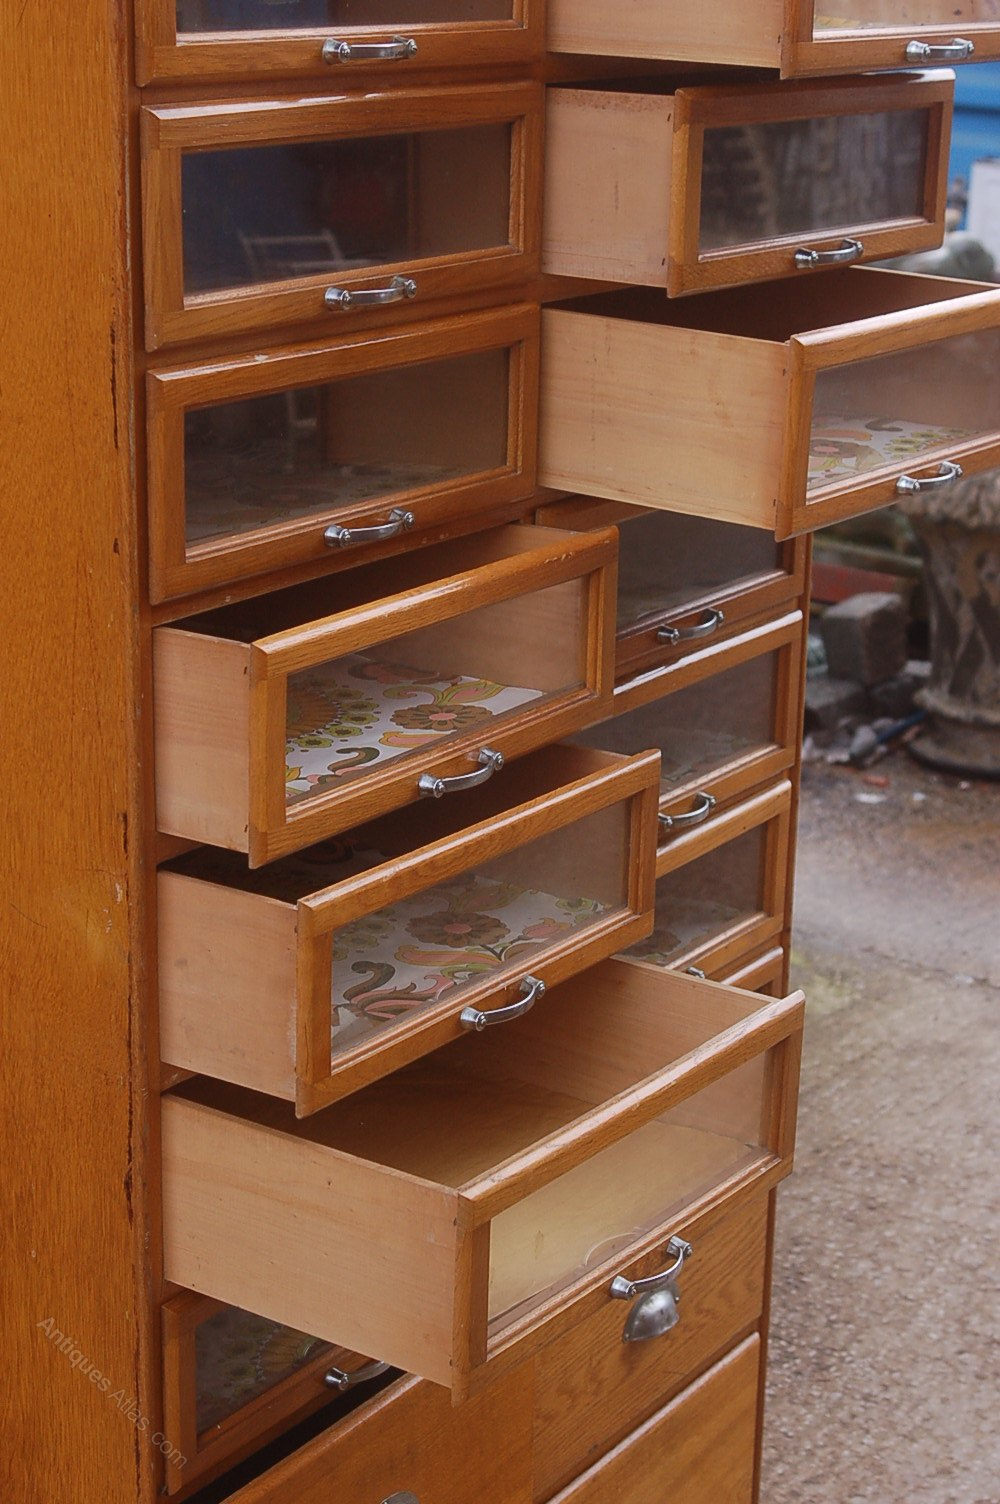 Used Cabinets For Sale >> Antiques Atlas - Retro Haberdashery Cabinet Multi Drawer Cabinet